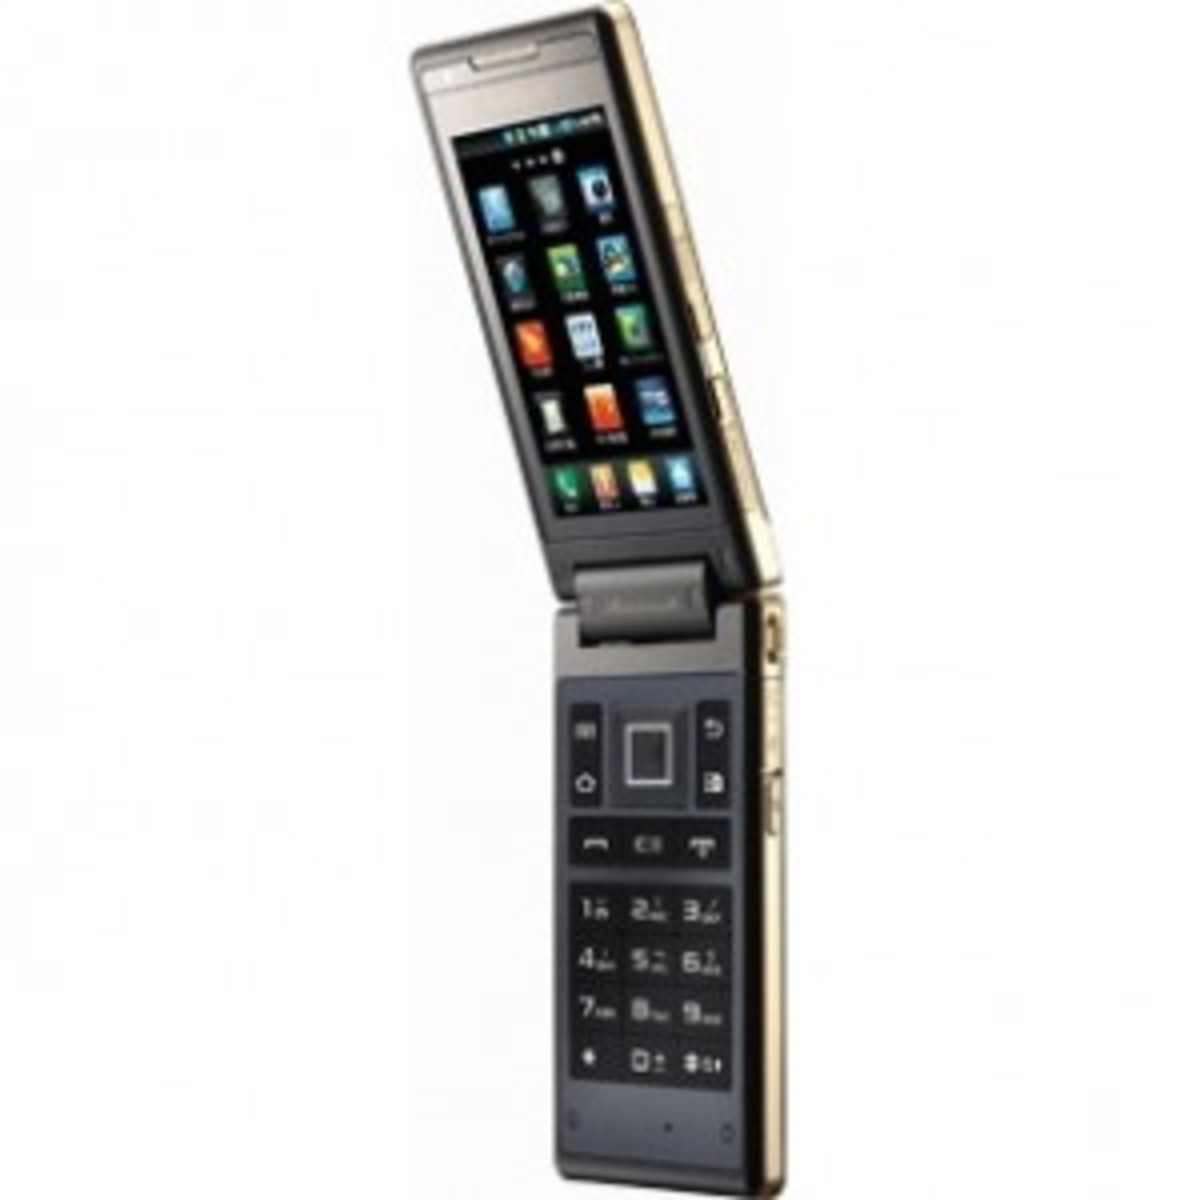 Samsung W899 Android Flip Phone